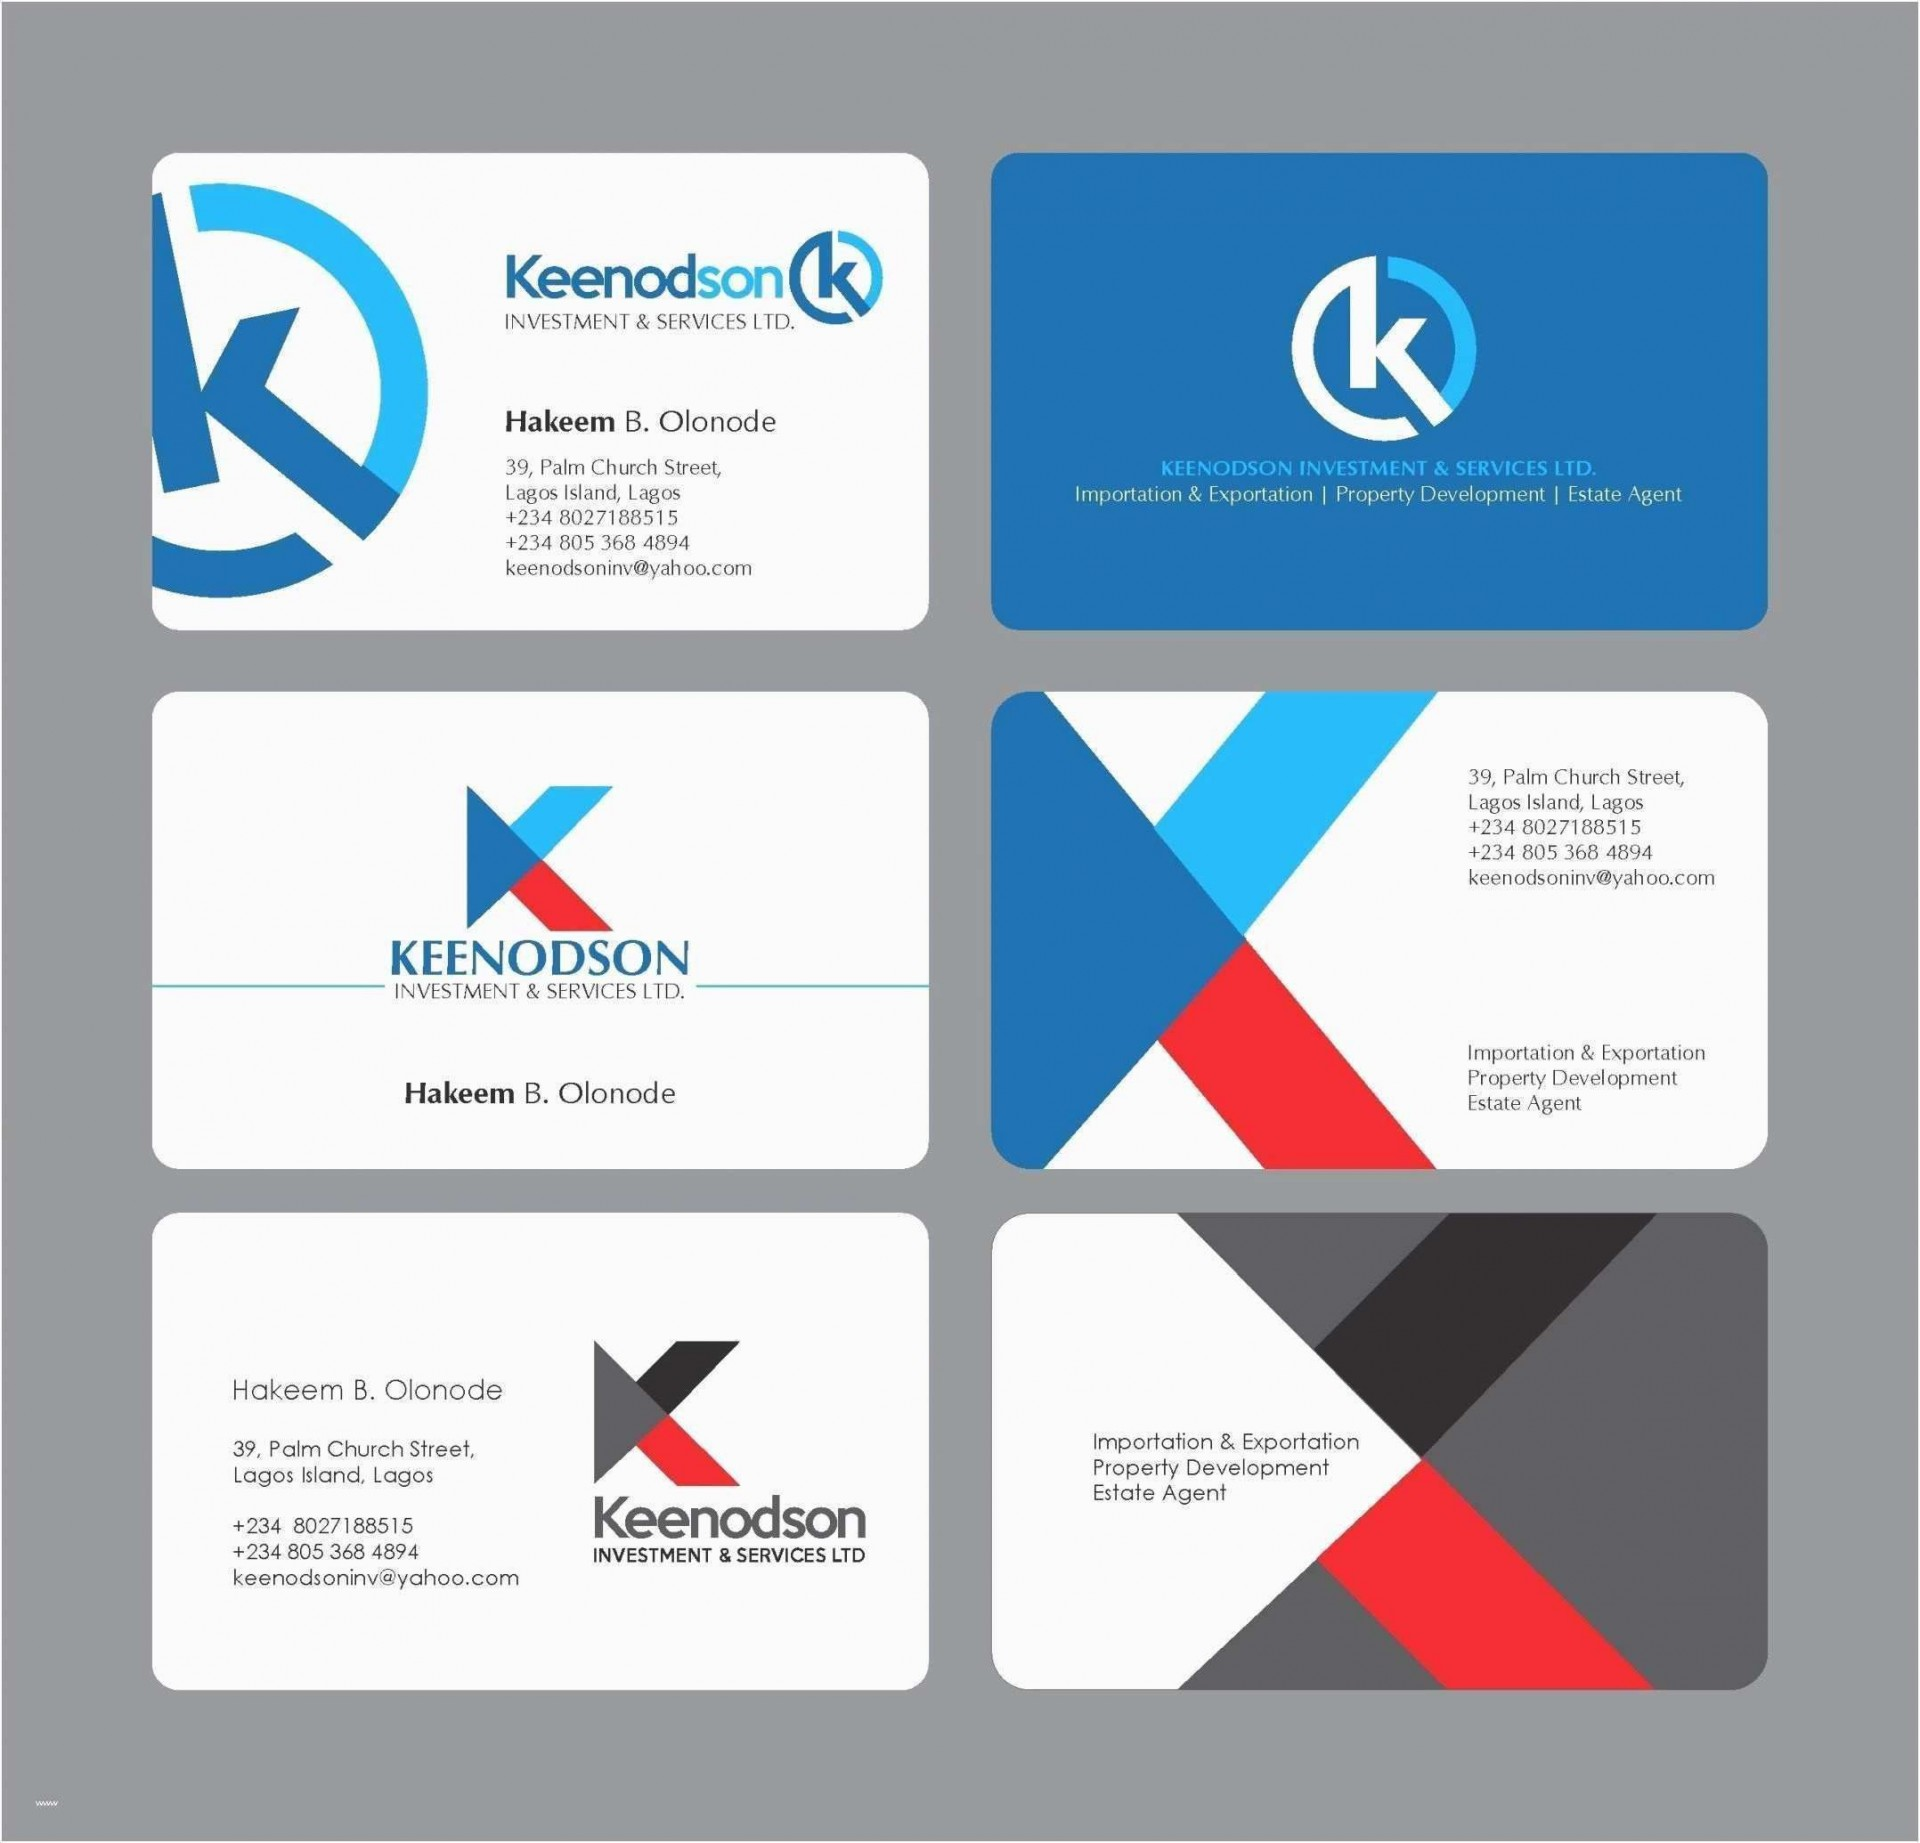 002 Dreaded Busines Card Layout Indesign Image  Size Template Free Download Cs61920